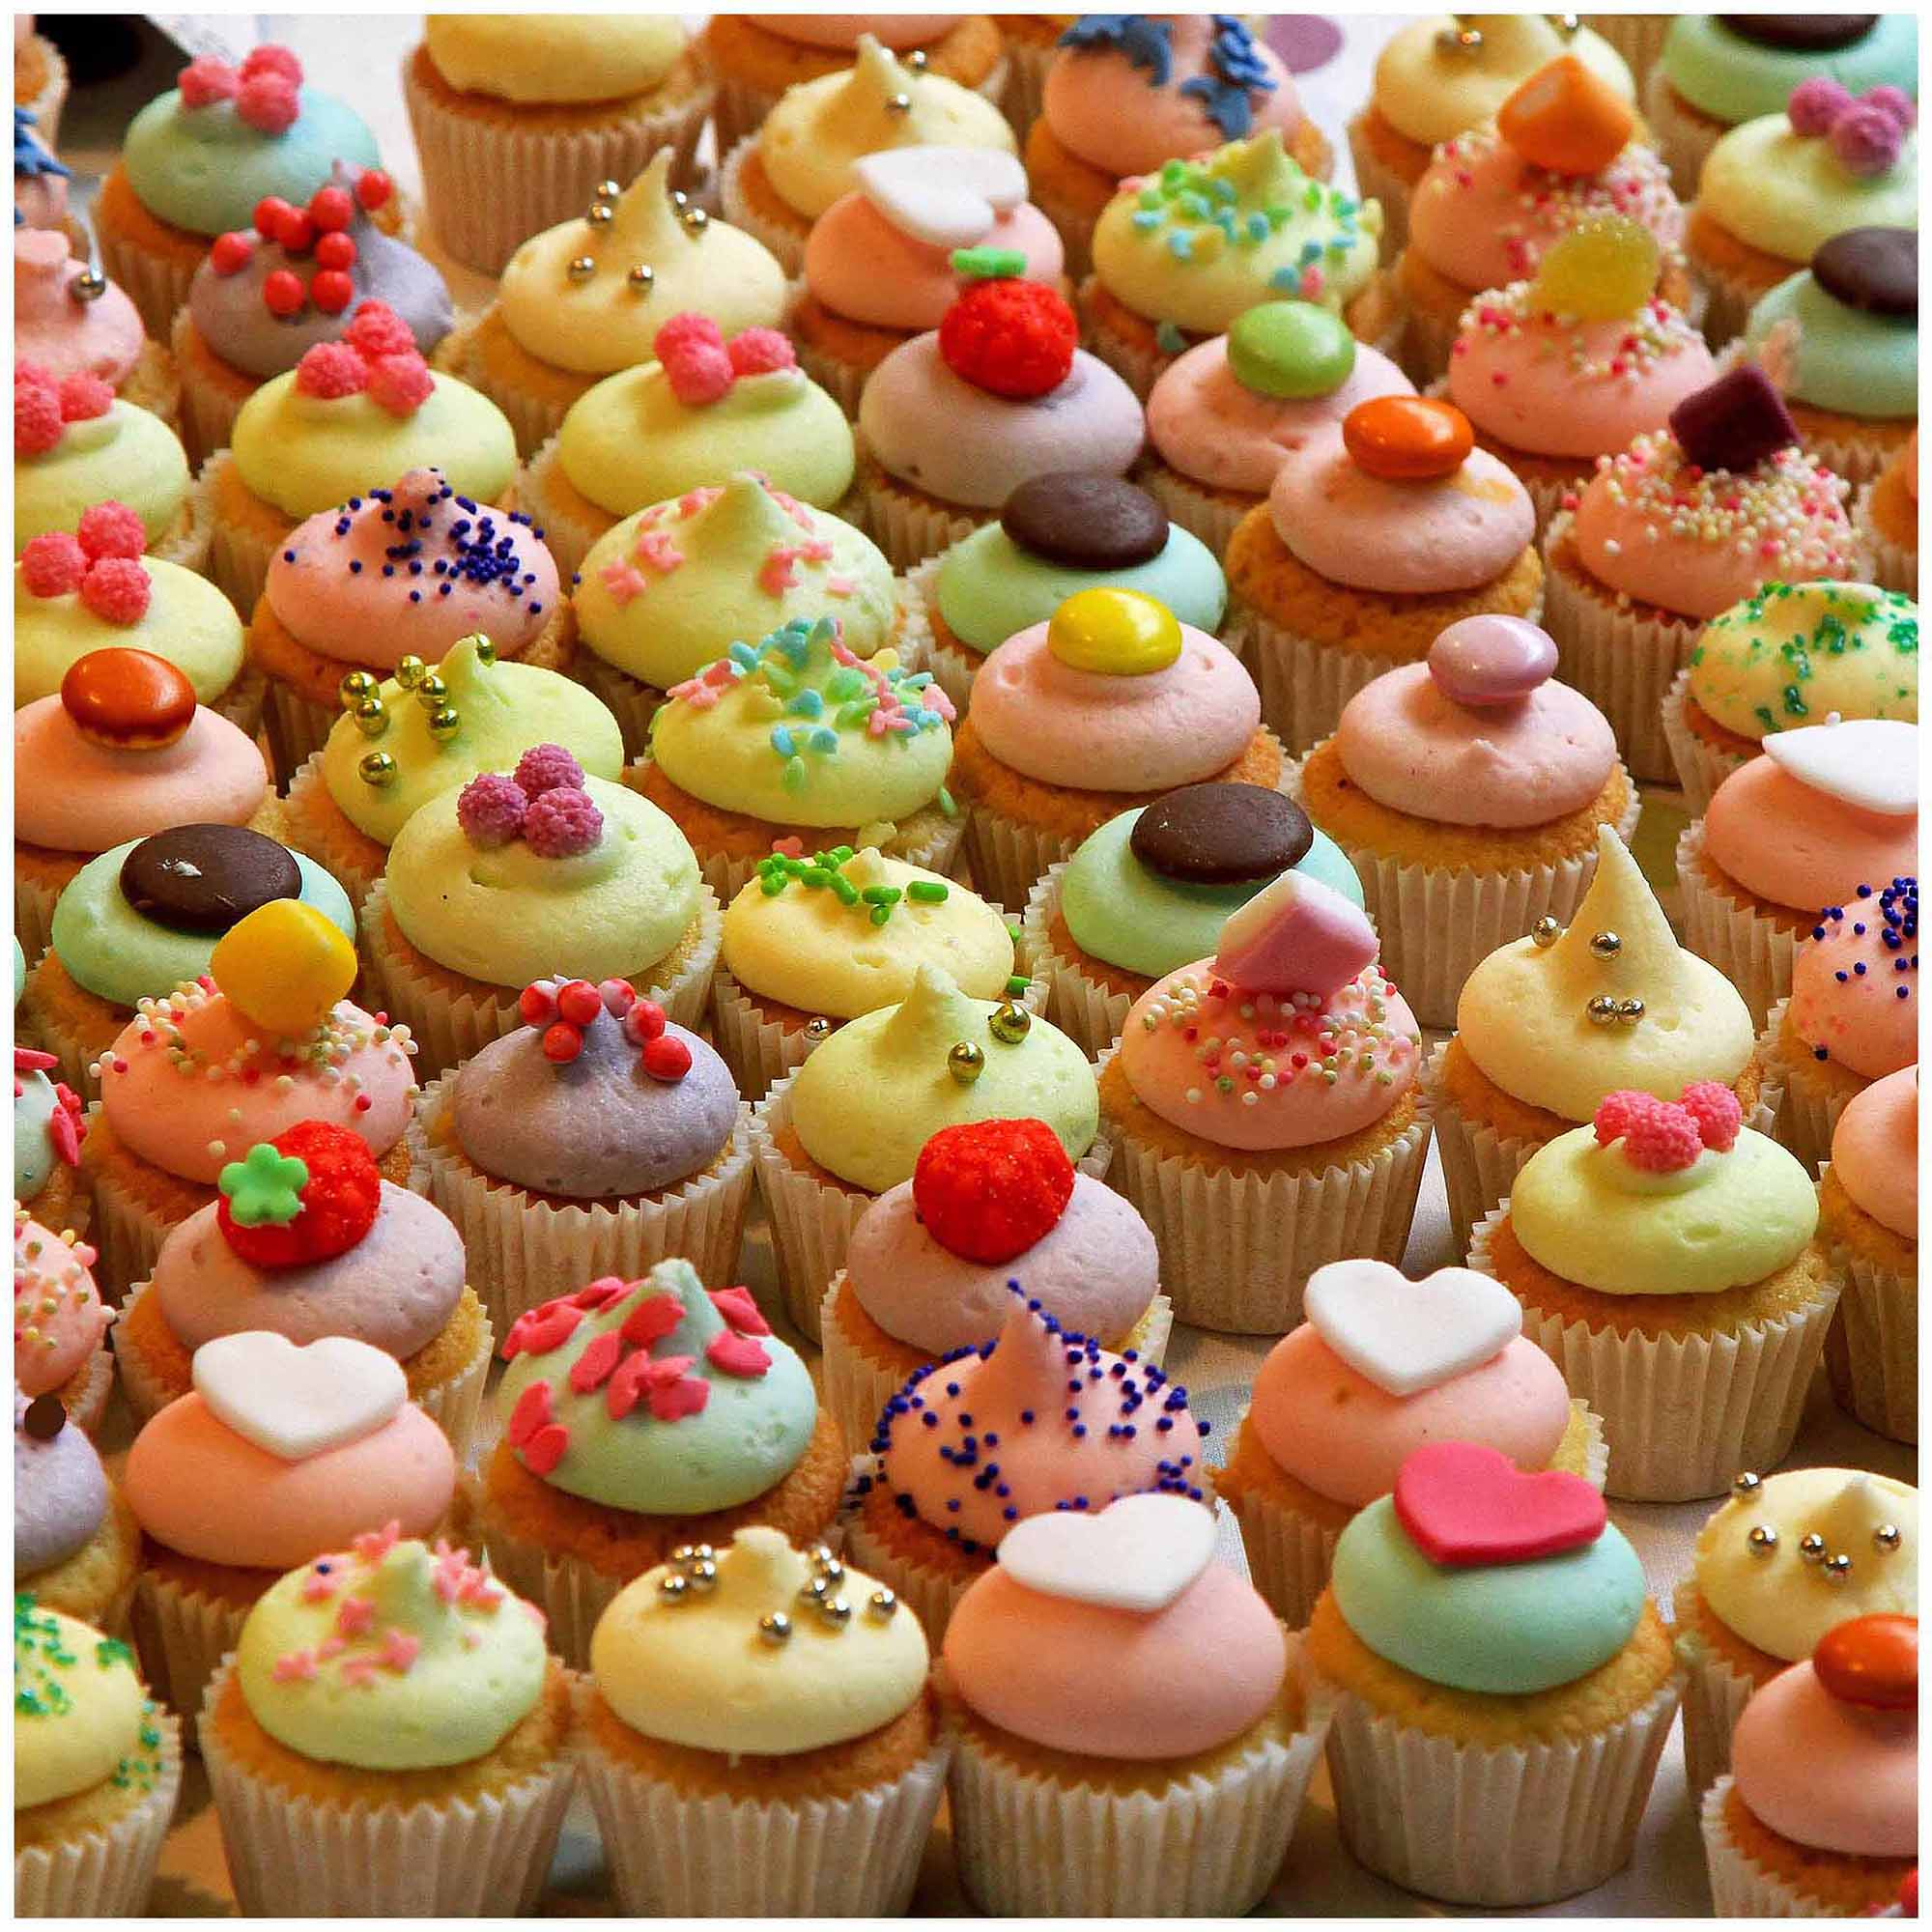 "World's Most Difficult Jigsaw Puzzle 500 Pieces 15""X15""-Killer Cupcakes"